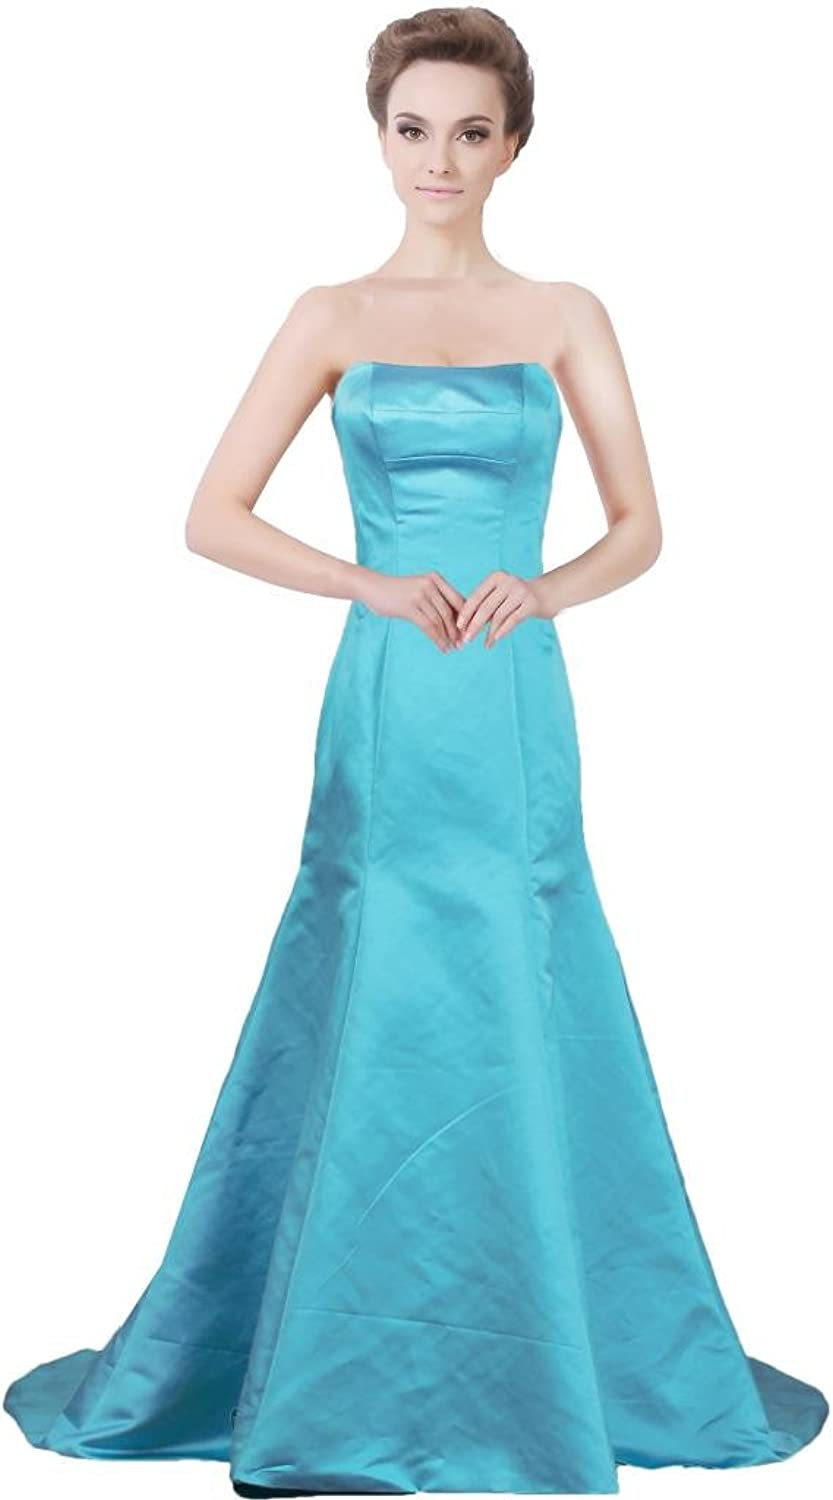 ANTS Women's Mermaid Long Evening Dresses Simple Prom Gown 2017 Size 2 US bluee